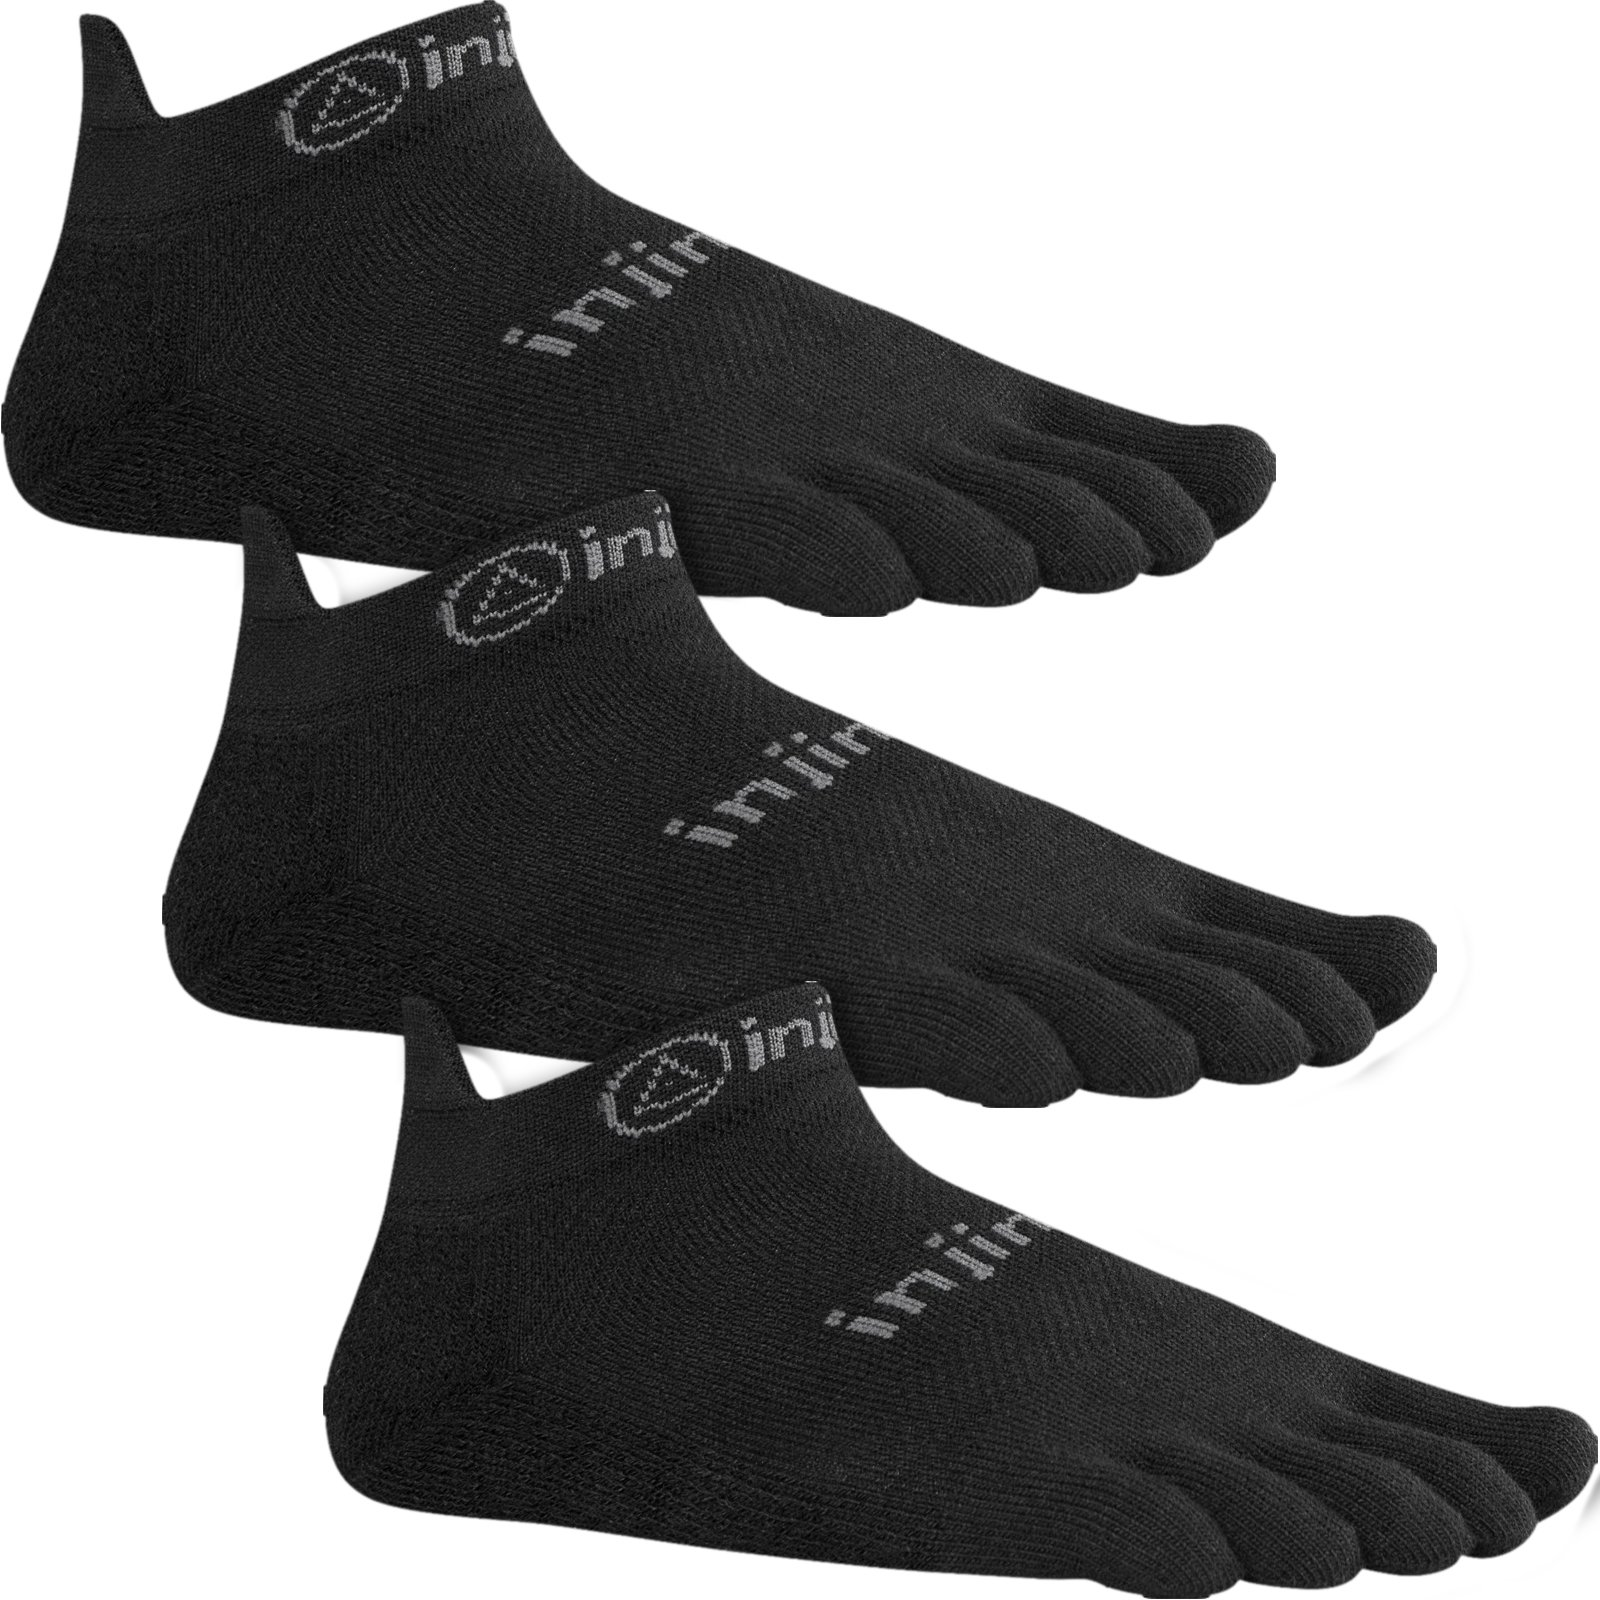 Injinji Run Lightweight No-Show 3-pk Black S by Injinji